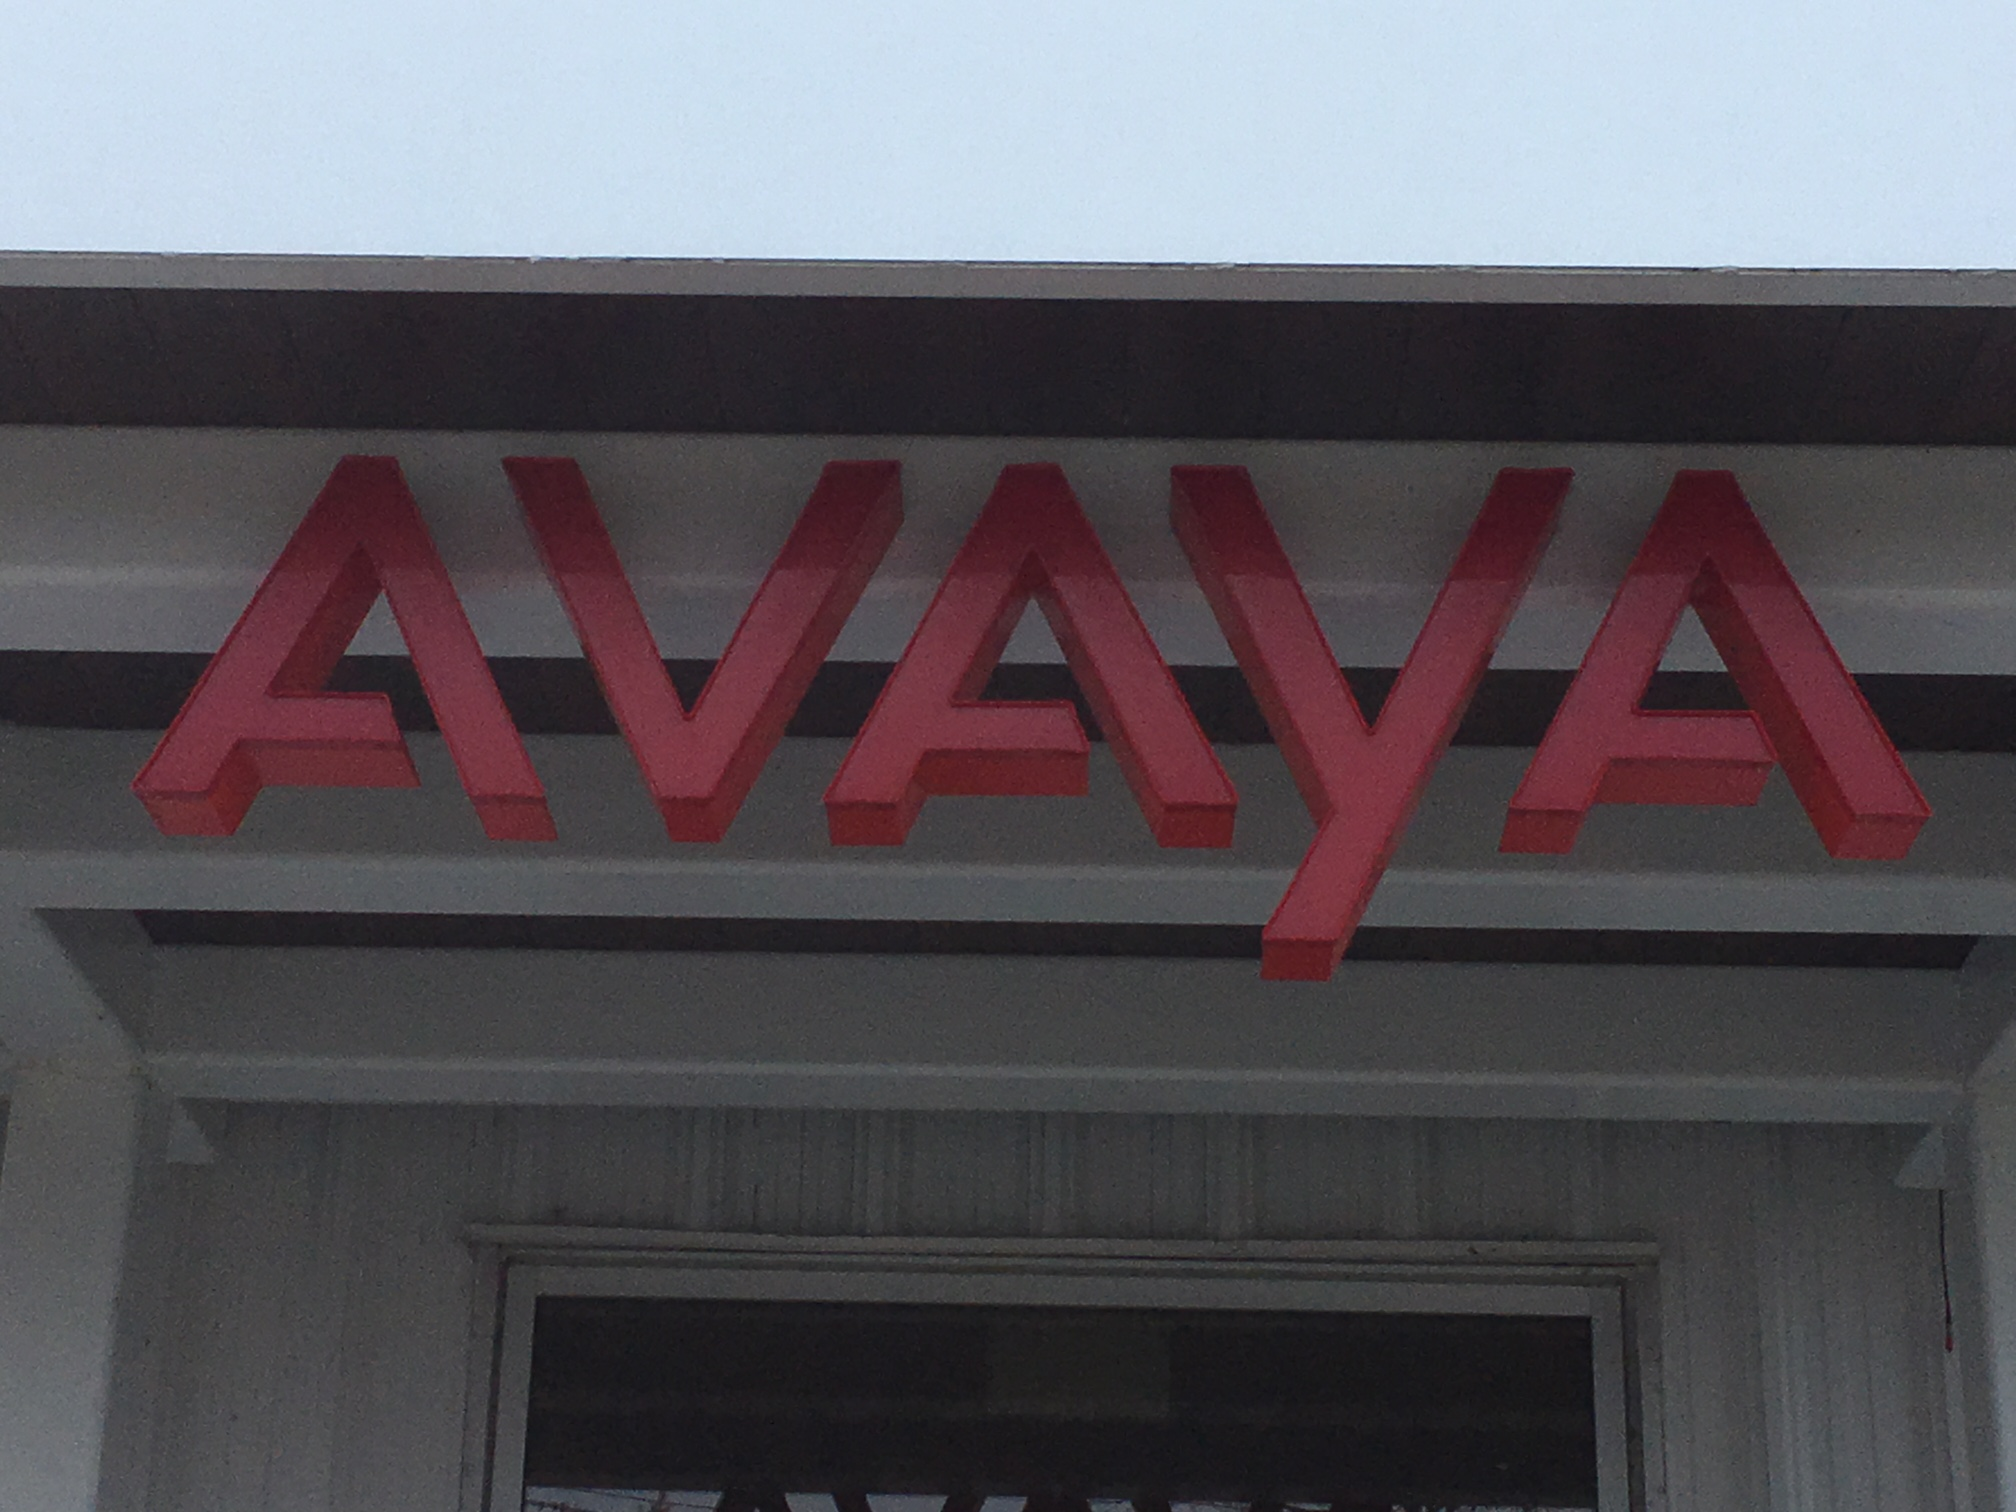 Avaya closing their doors in mid-2019